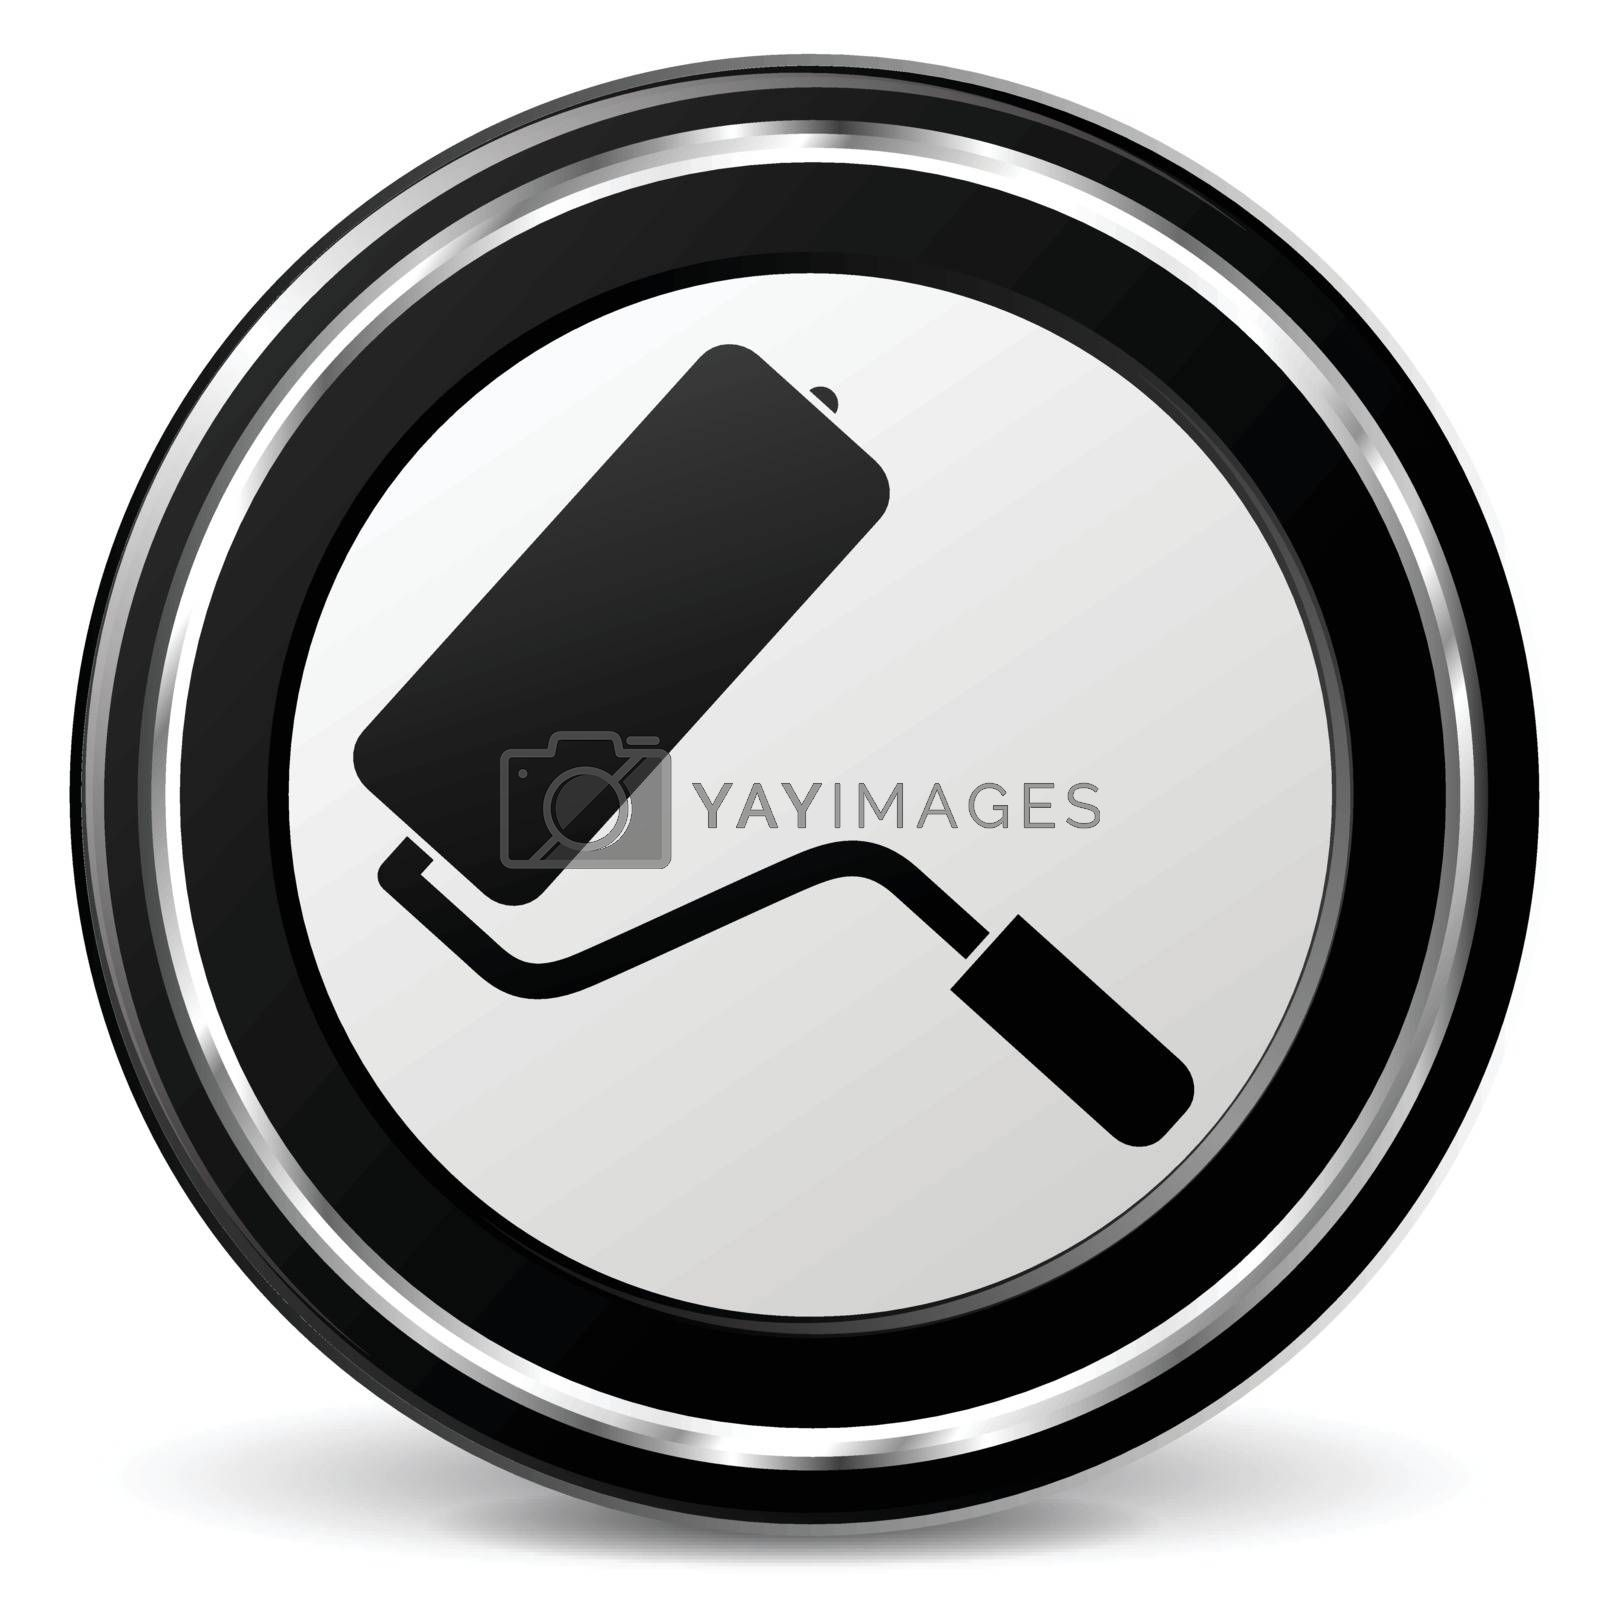 illustration of paint roller black and silver icon